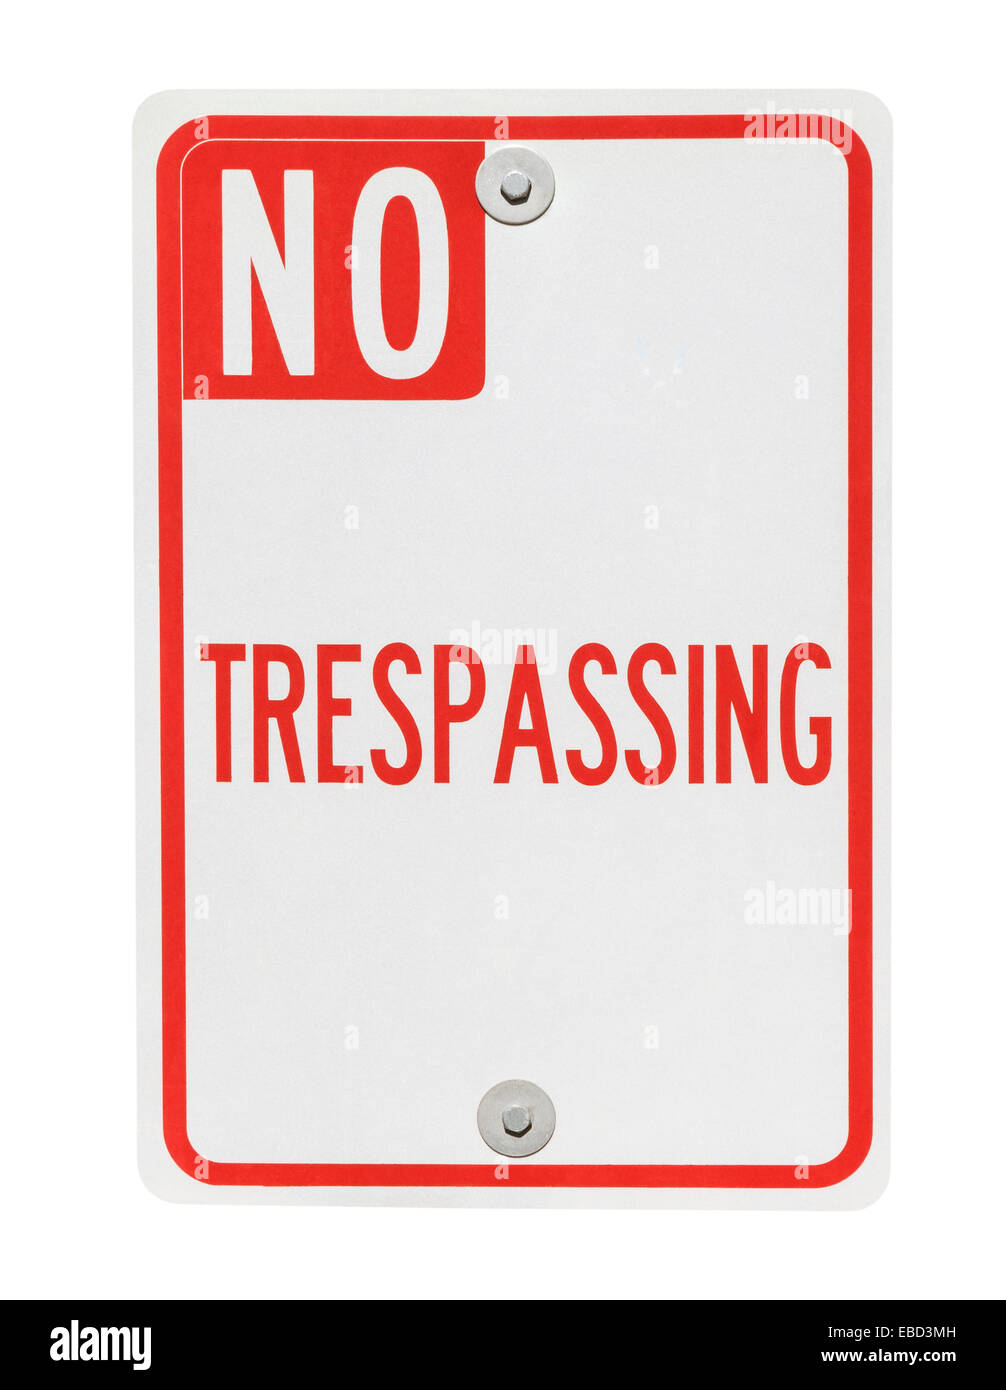 No trespassing sign isolated on white with clipping path. - Stock Image